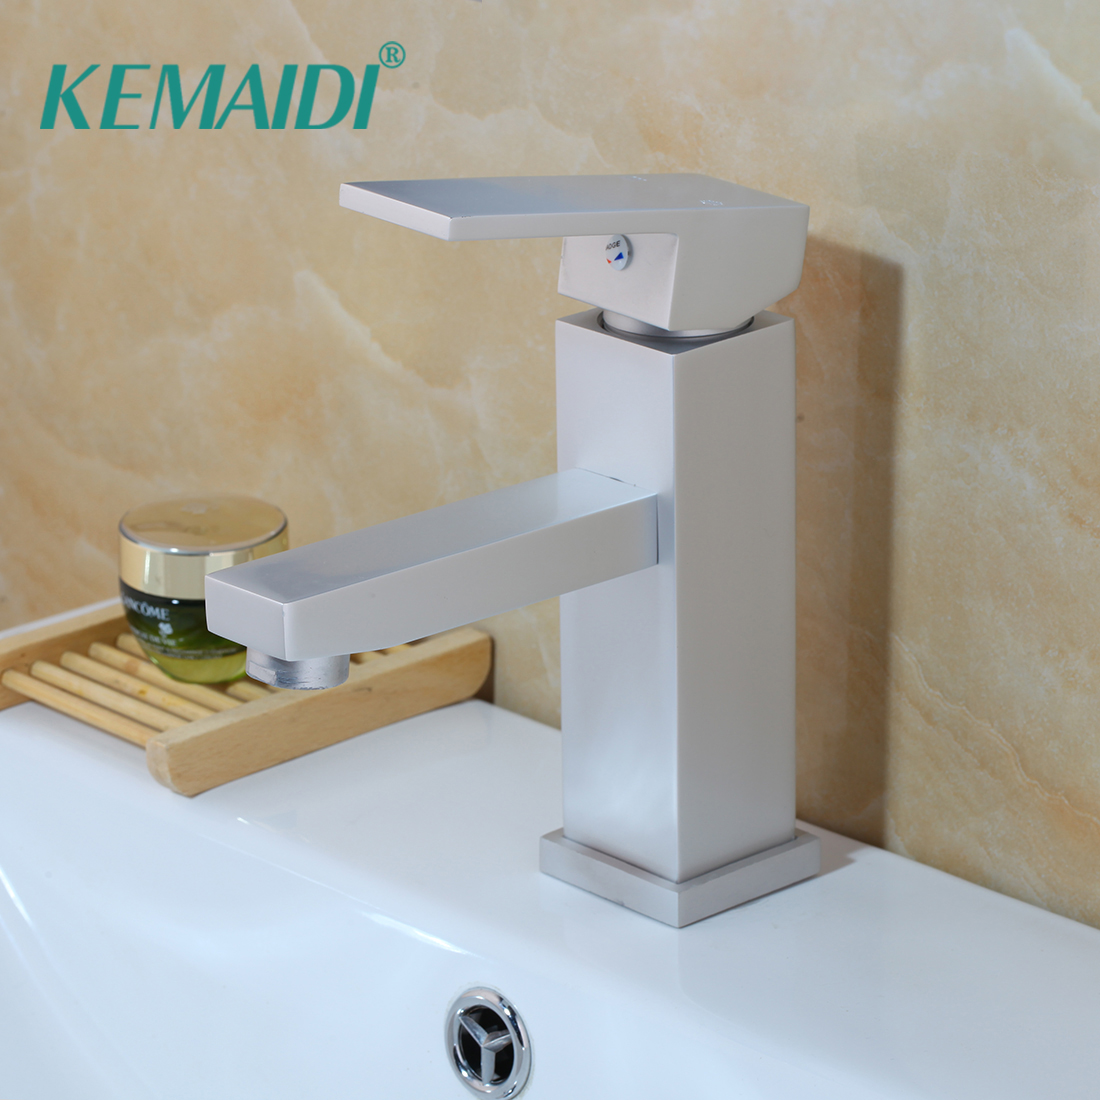 KEMAIDI Bathroom Single Handle Sink Faucet Basin Mixer Tap Deck Mounted Faucet Accessory Bathroom Faucets